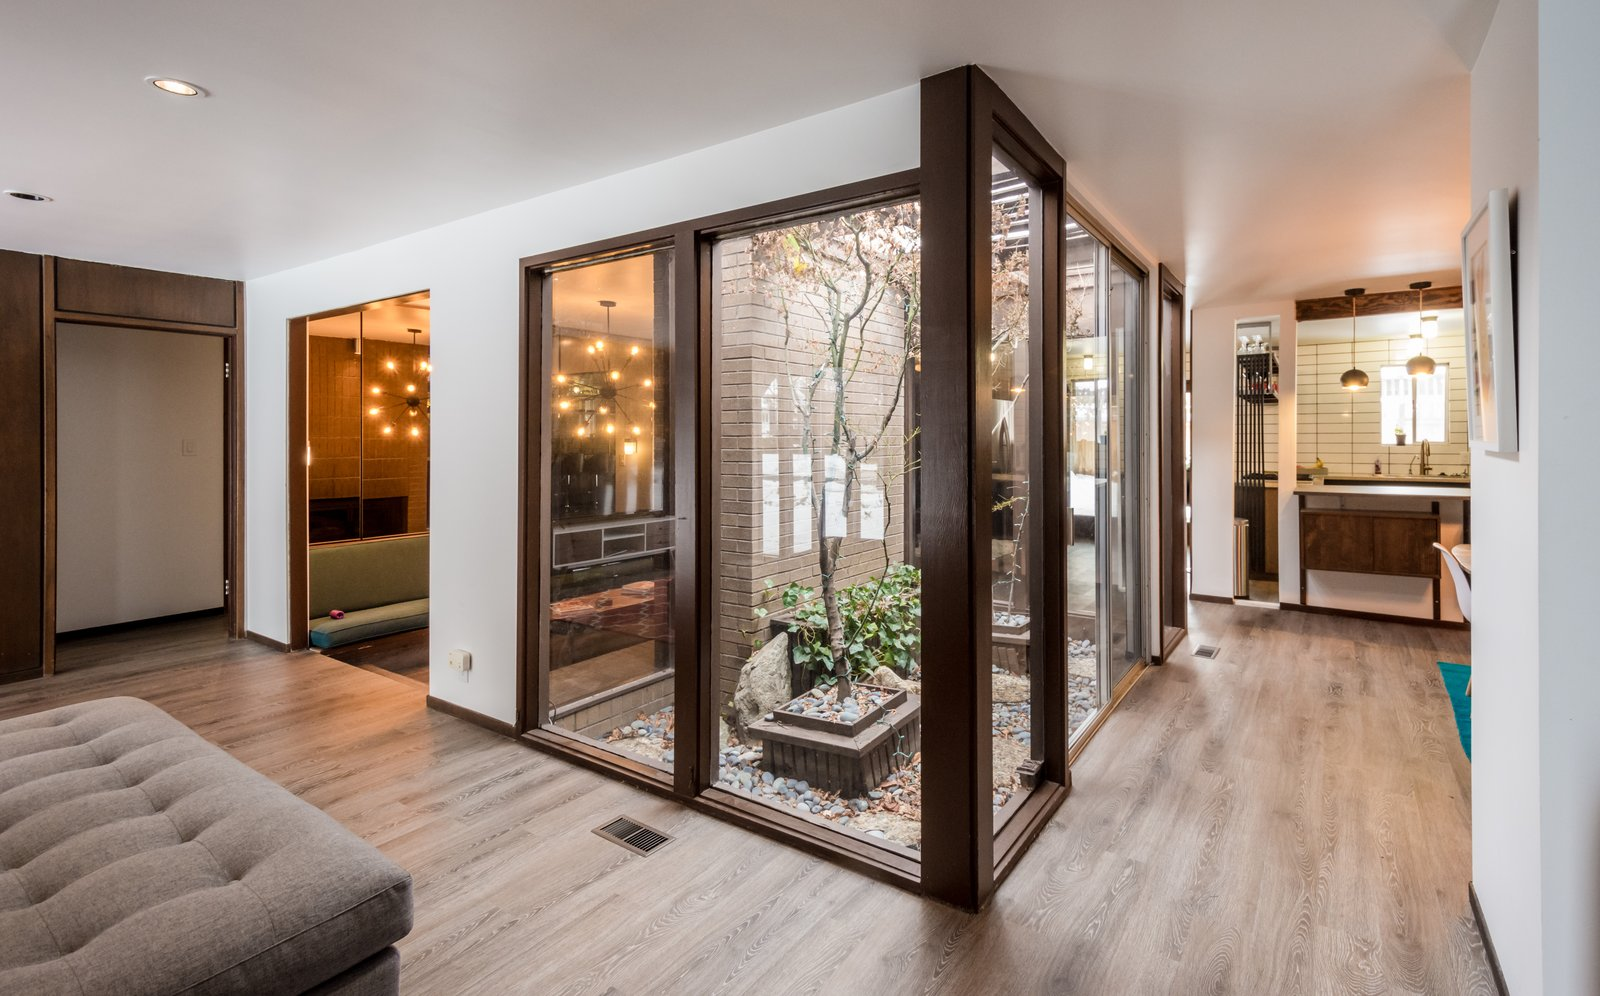 Entry of home showcasing the original atrium new flooring and open floor plan  Ron Molen Revival by The Muve Group